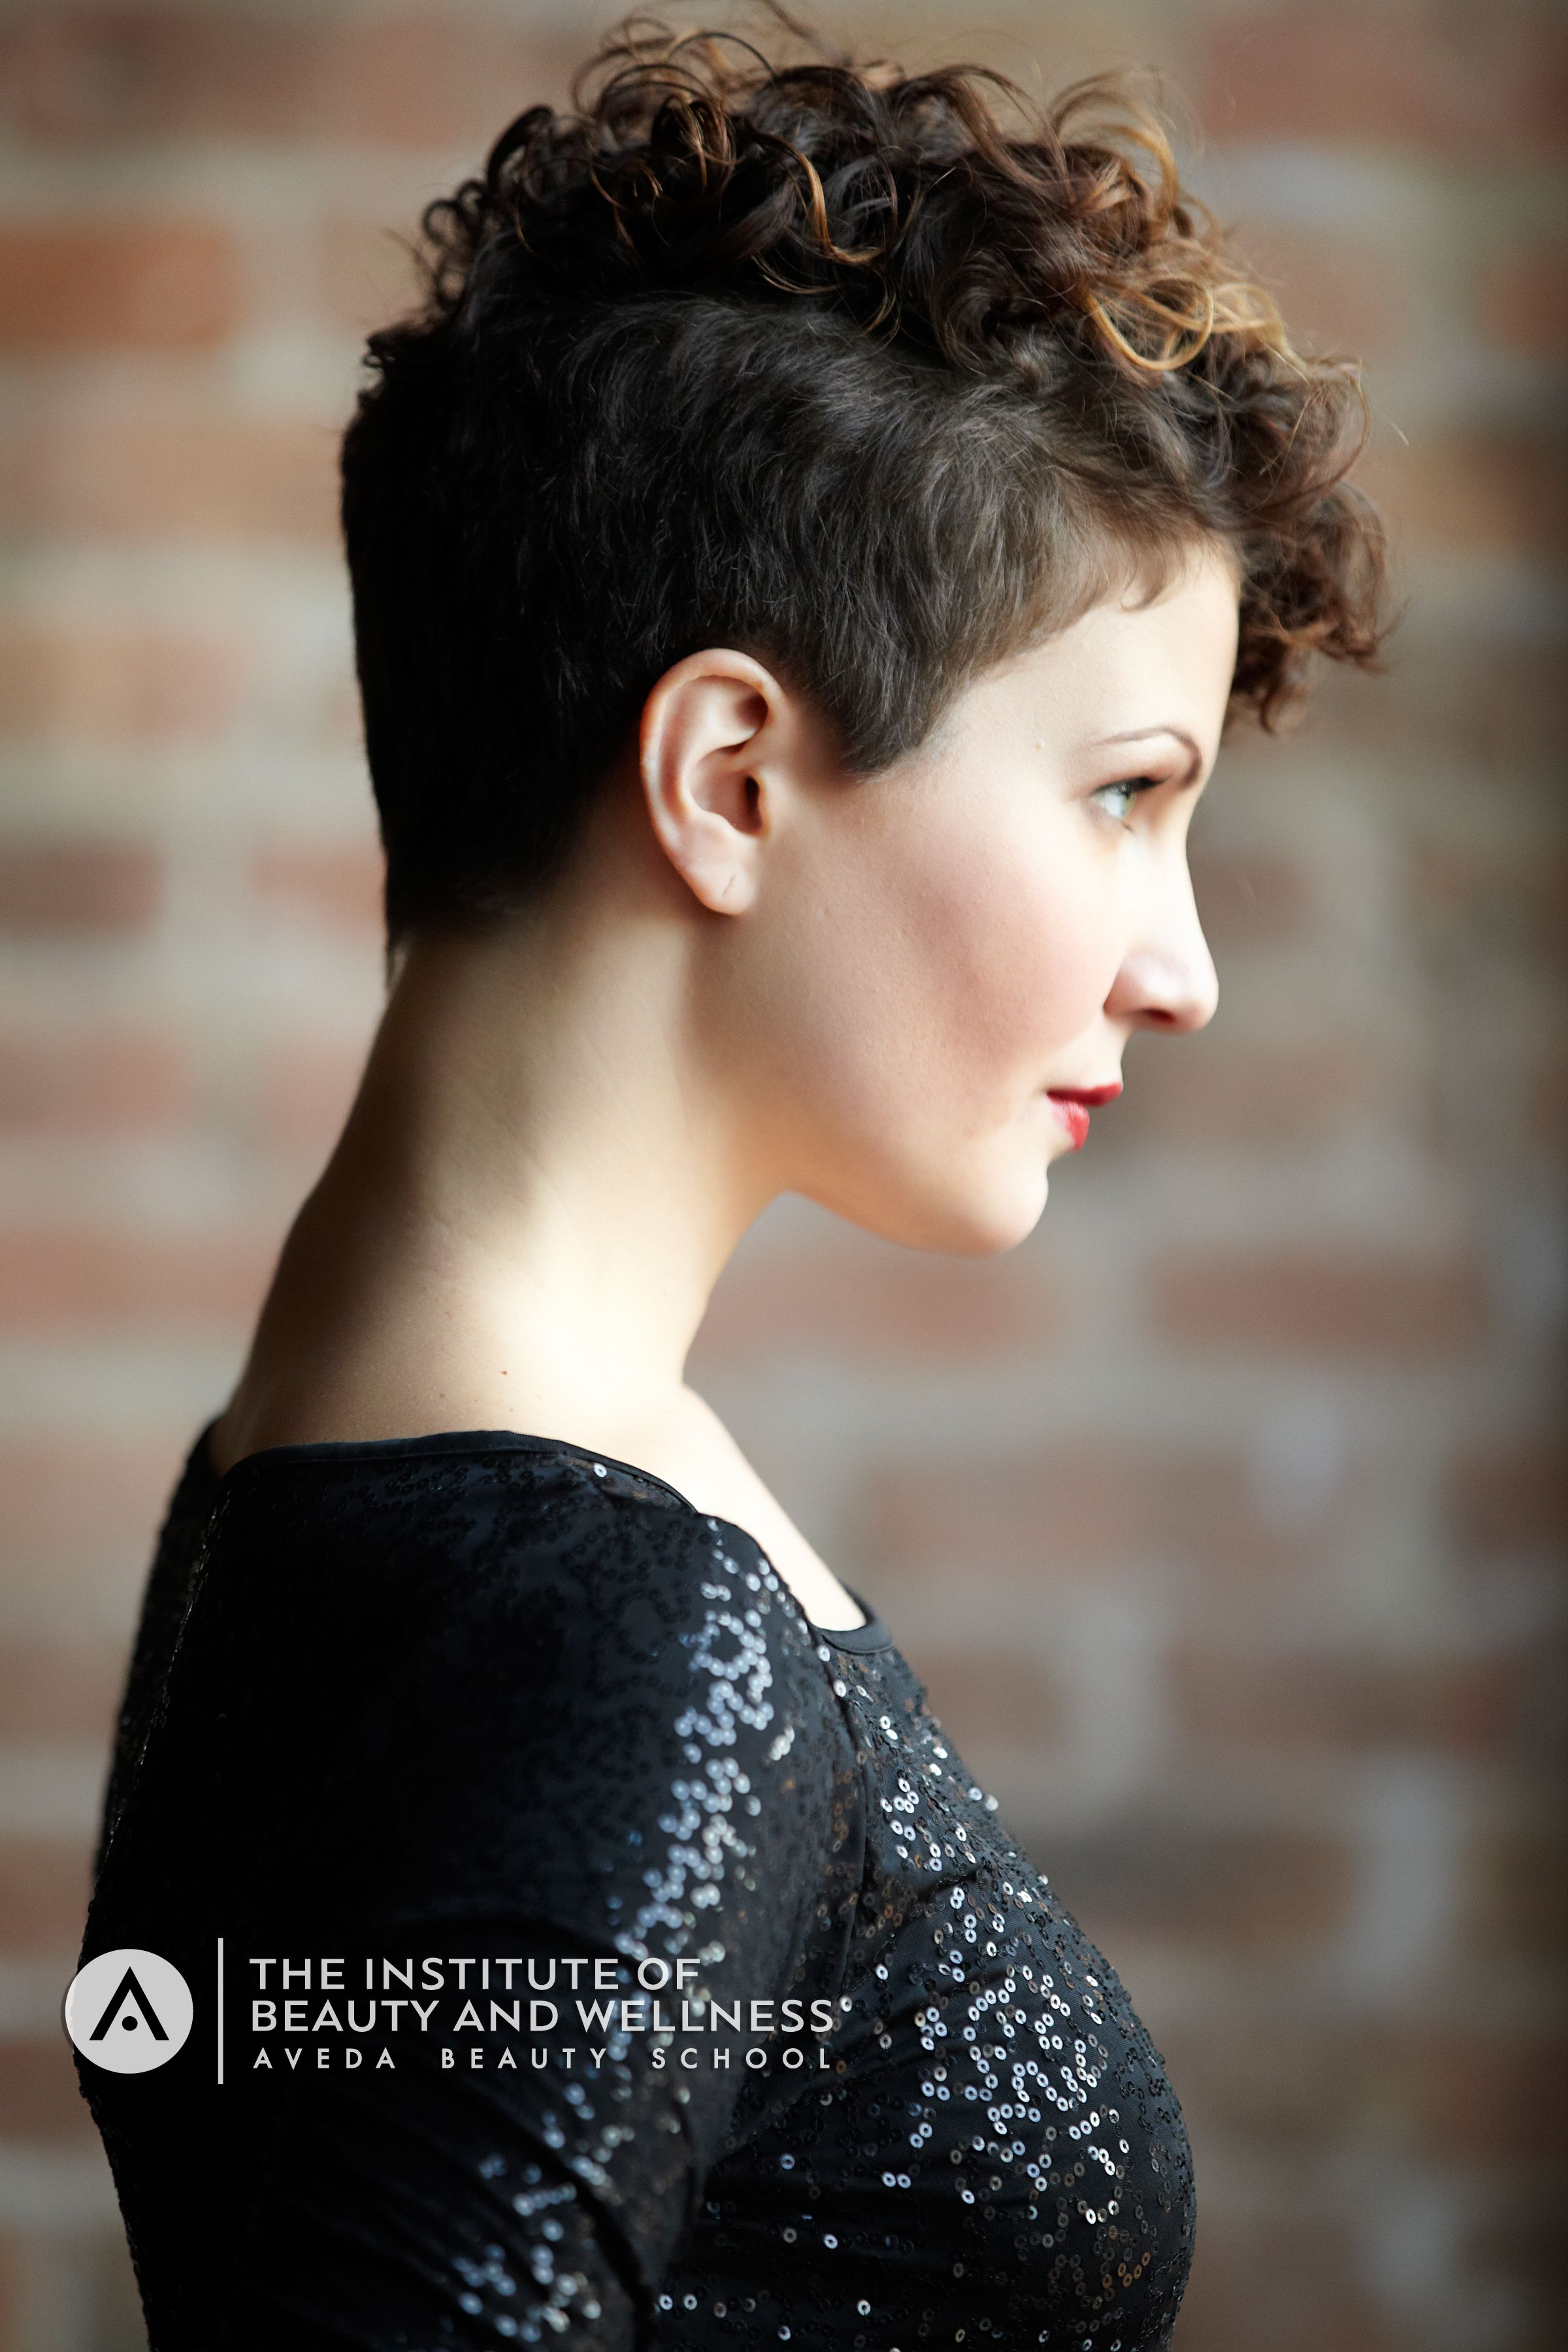 Superchic Shaved Hairstyles for Women in